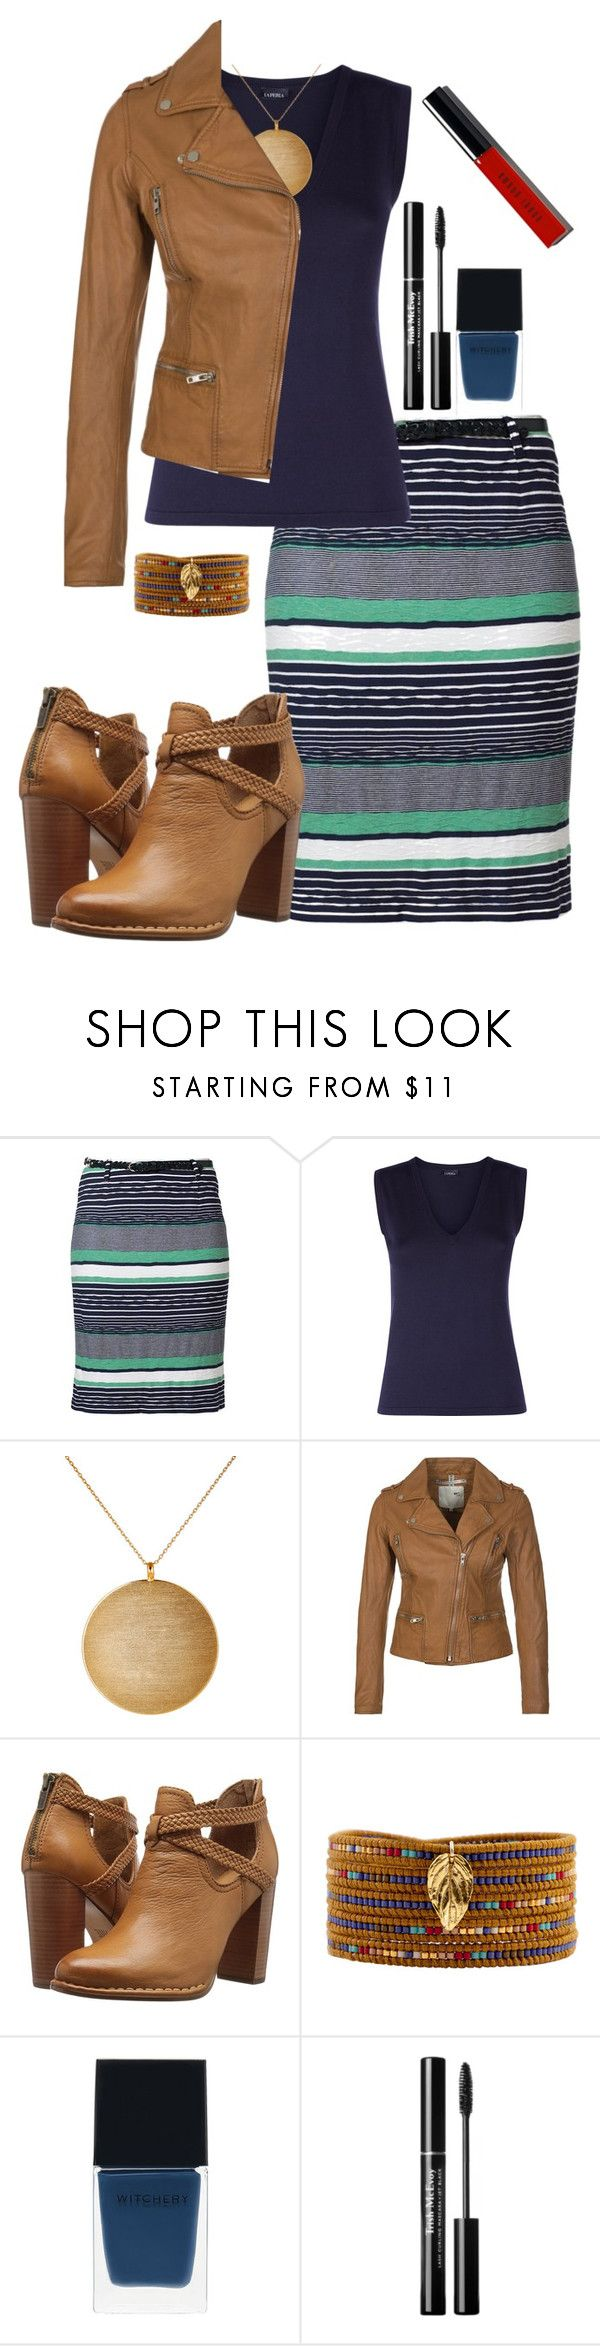 """""""Untitled #304"""" by missbeth1897 ❤ liked on Polyvore featuring Gerry Weber Edition, Kenneth Jay Lane, MKT studio, Frye, Chan Luu, Witchery and Bobbi Brown Cosmetics"""